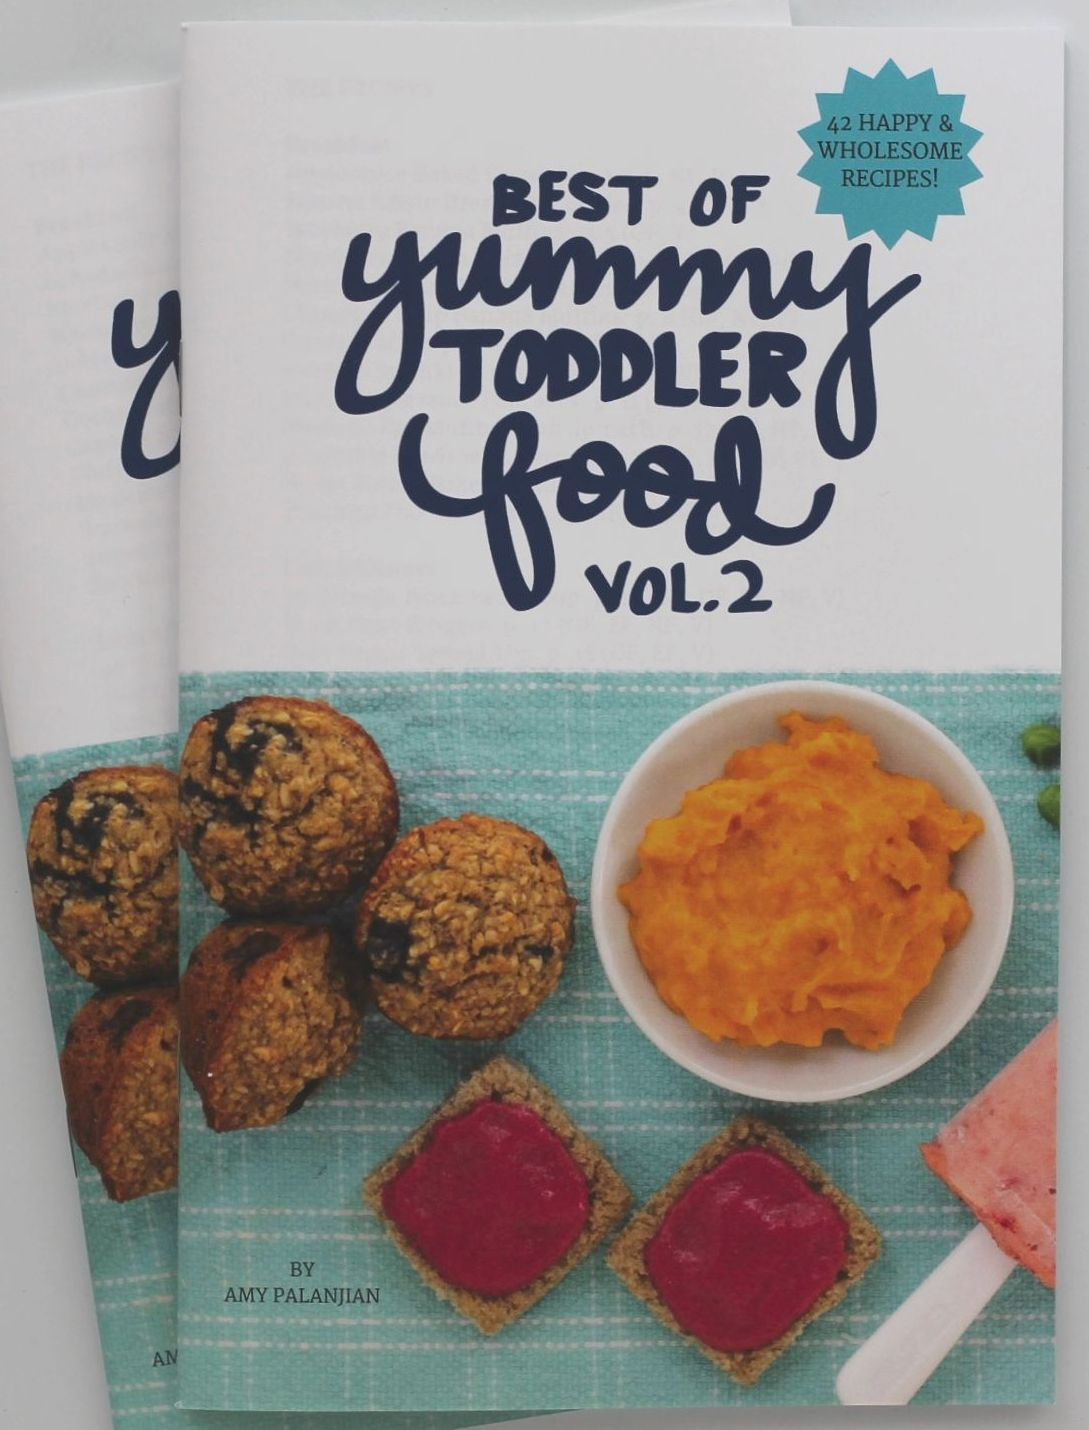 Toddler wont eat dinner 10 easy things to try 10 easy things to try forumfinder Image collections